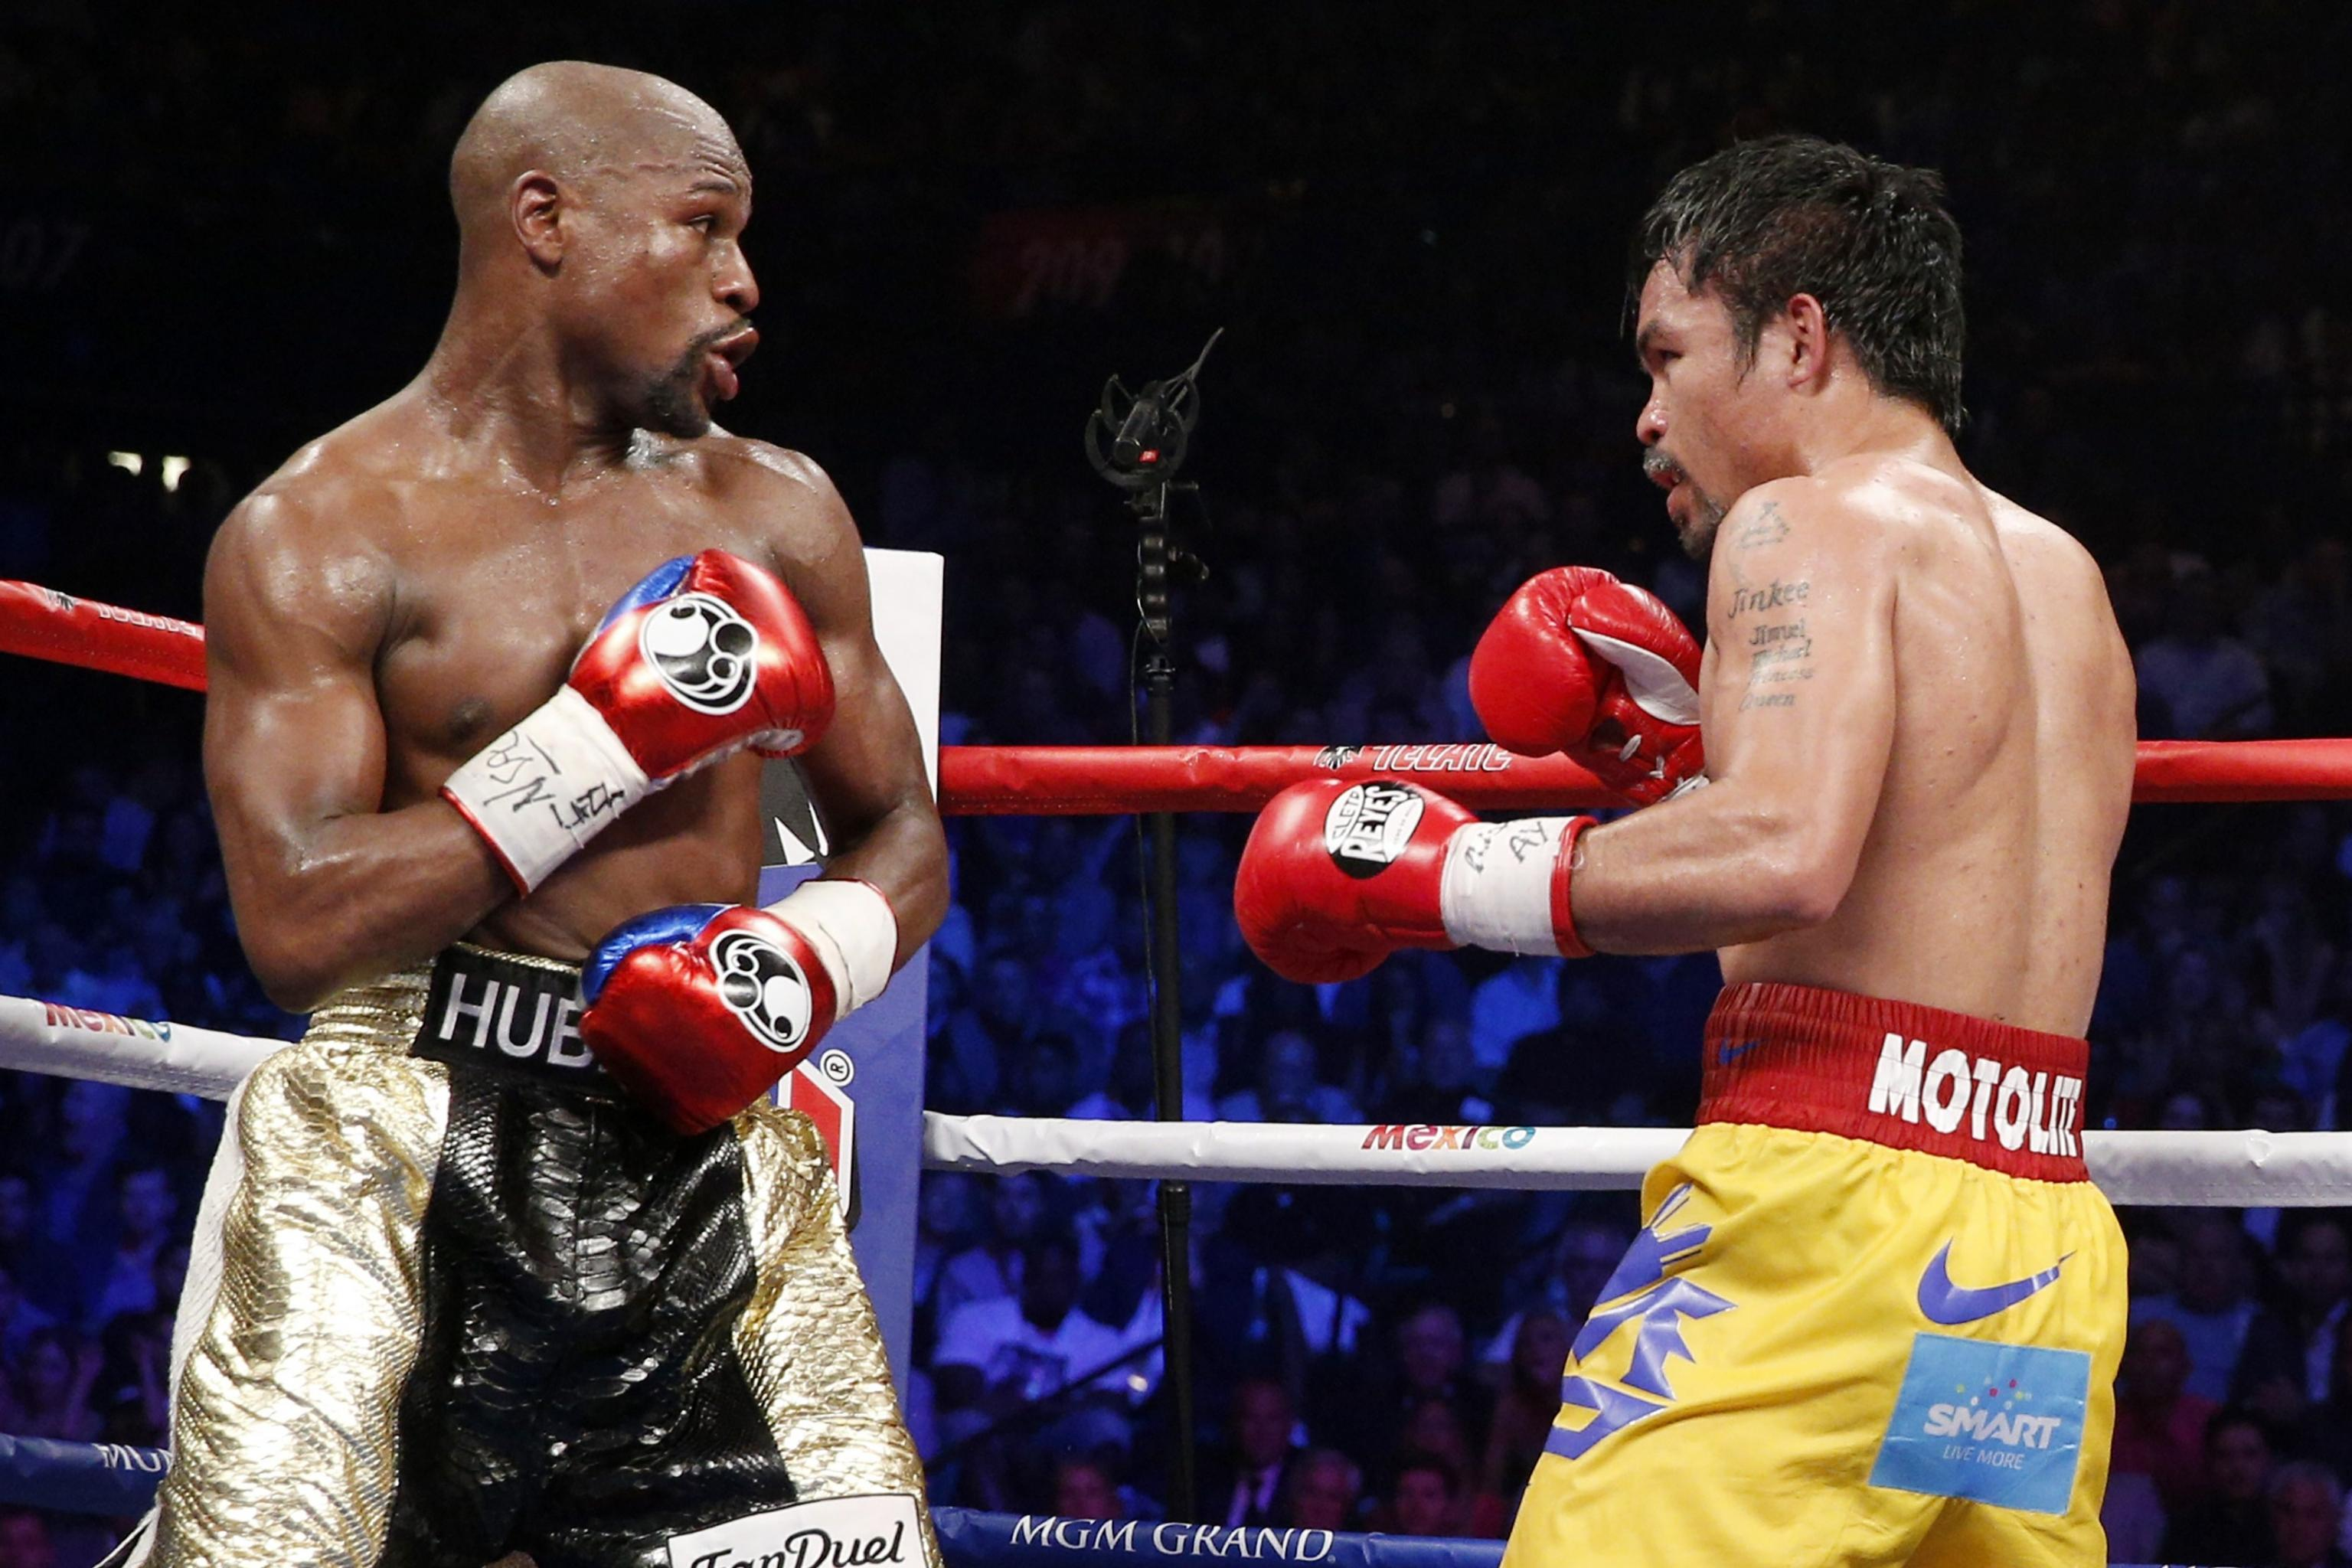 Floyd Mayweather Vs Manny Pacquiao 2 Latest News And Rumors On Potential Fight Bleacher Report Latest News Videos And Highlights